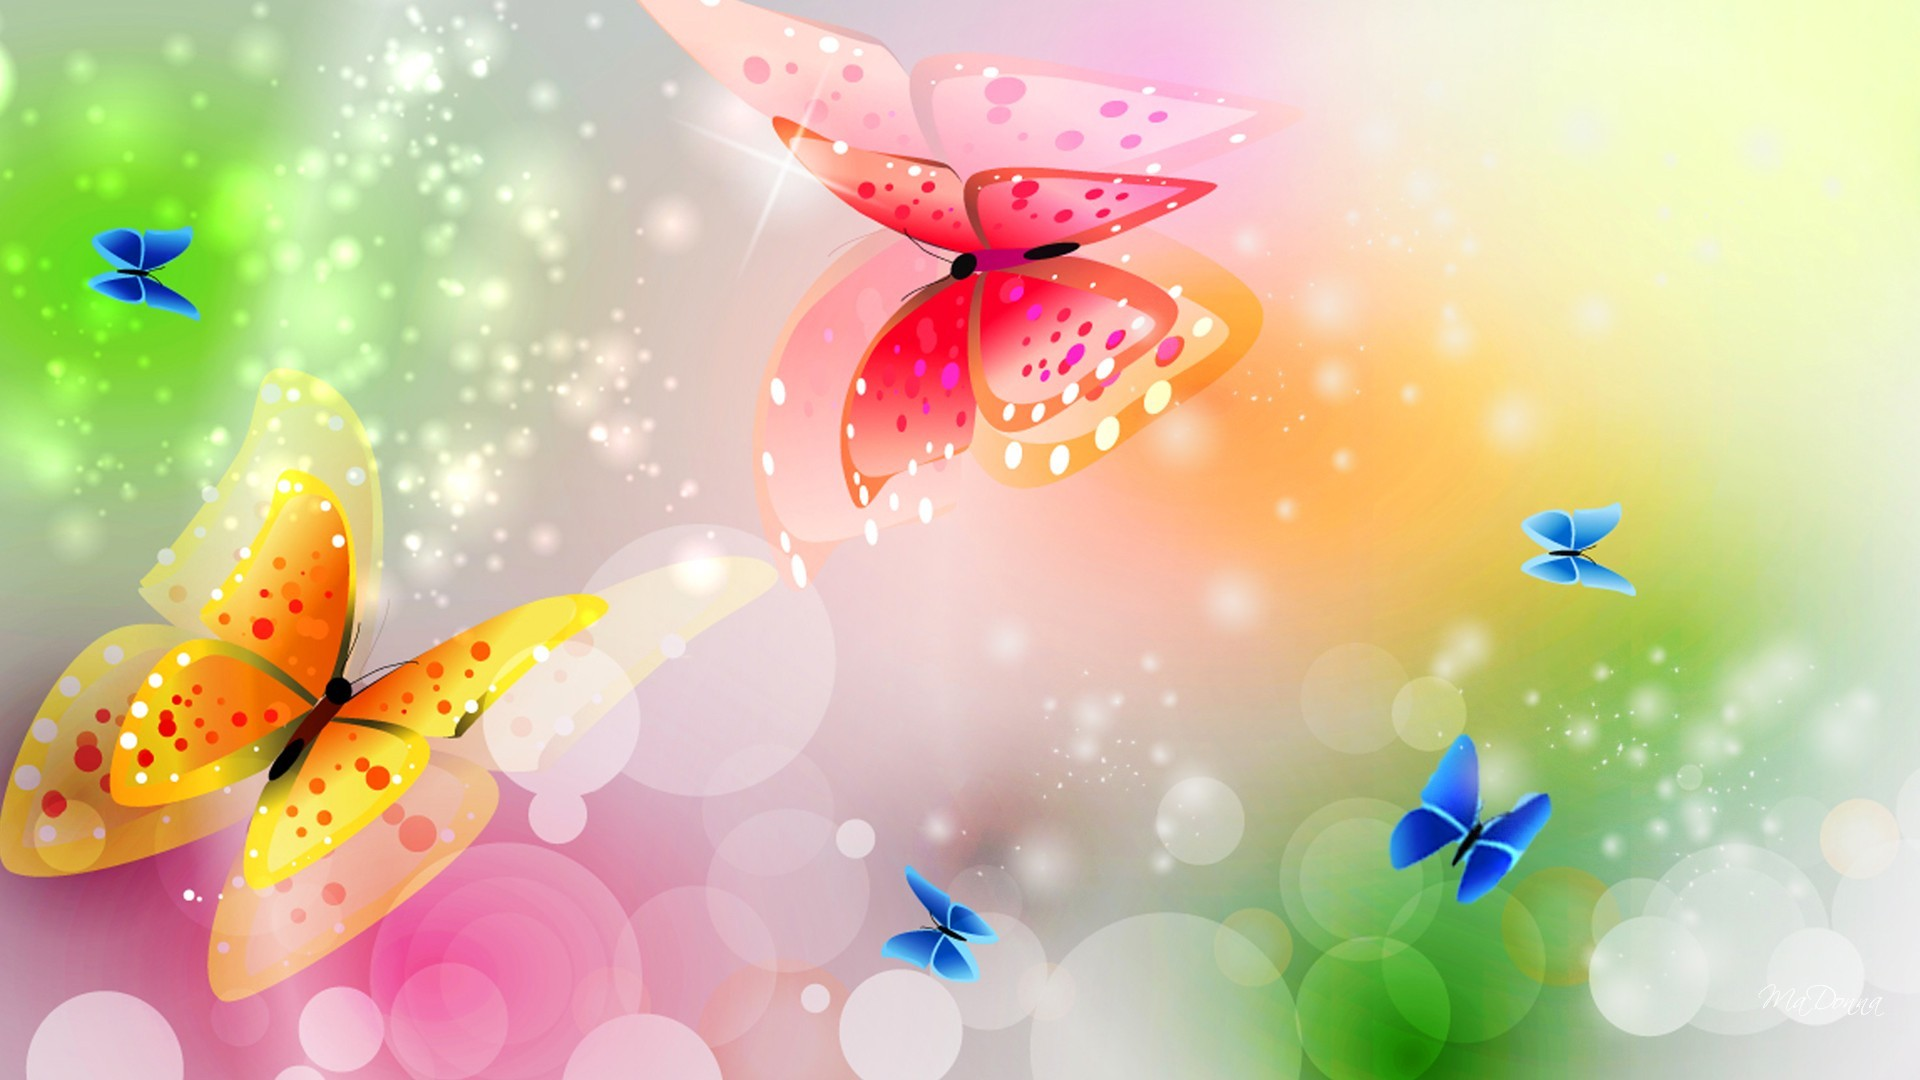 Butterfly Wallpaper Images